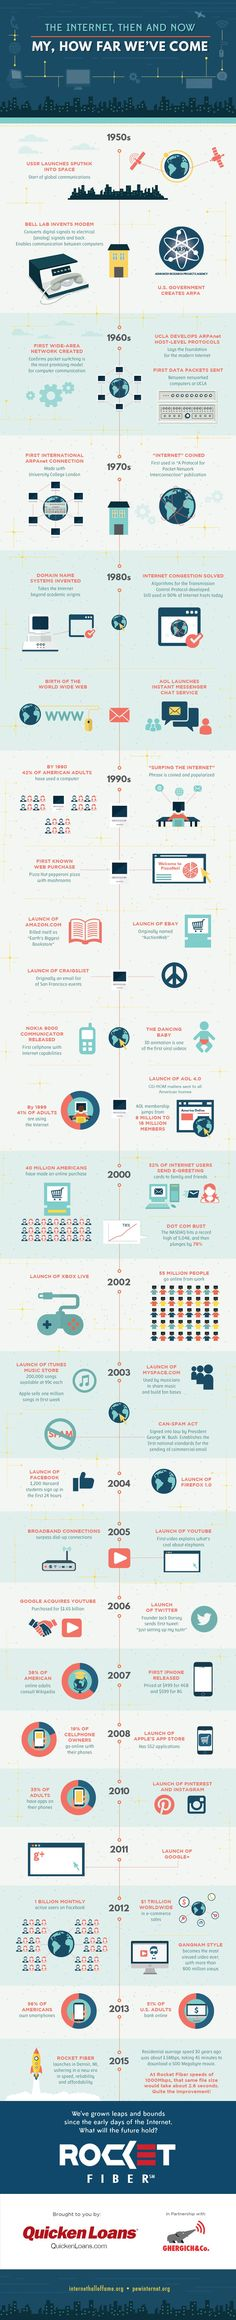 The Internet Then and Now #infographic #Internet #Technology #History #infografía